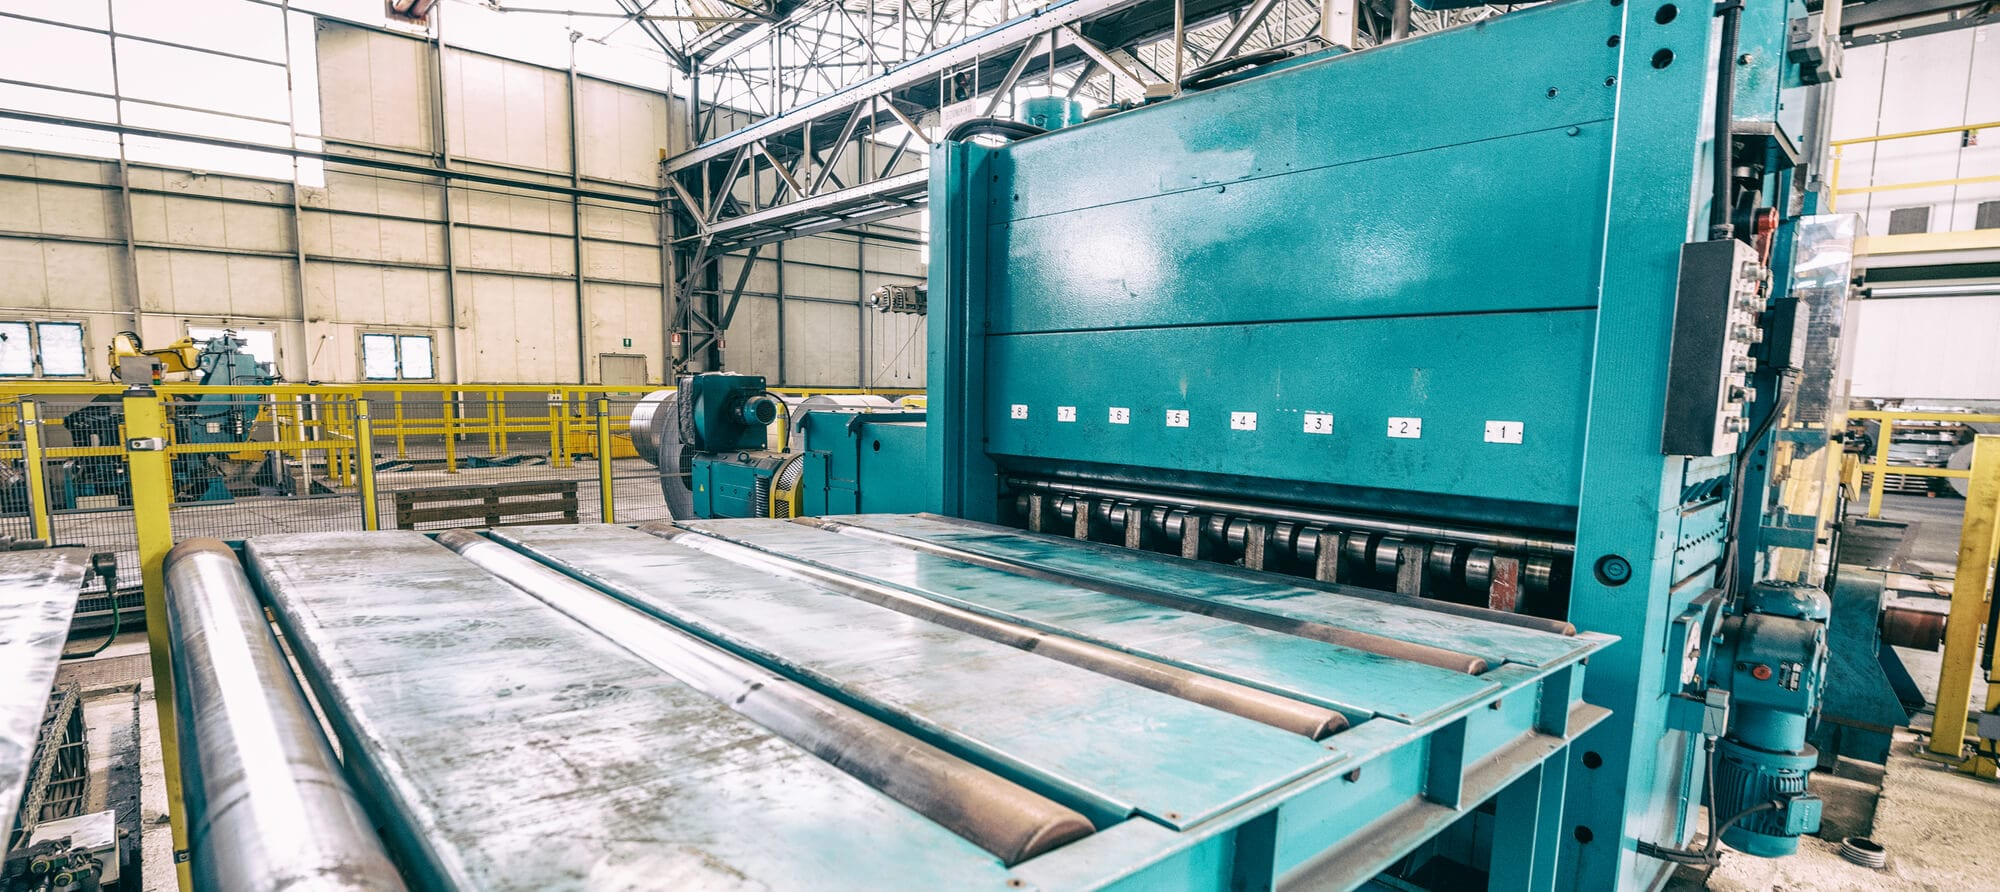 The Real Cost of Buying Used Industrial Process Equipment